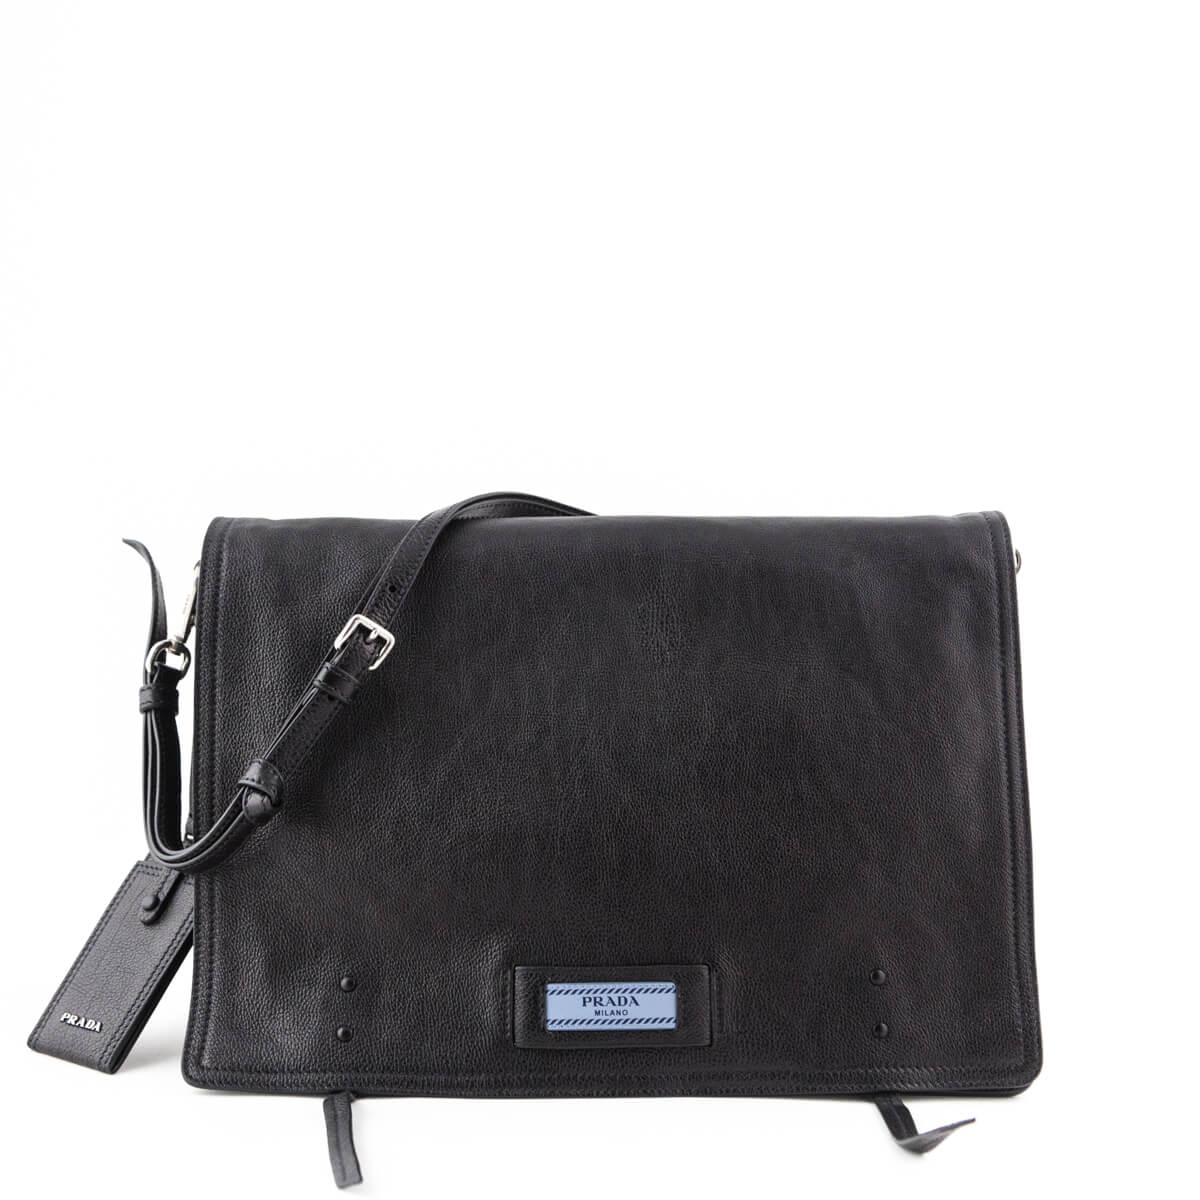 3e1483f98fc2 Prada Black Glace Calf Large Etiquette Shoulder Bag - LOVE that BAG -  Preowned Authentic Designer ...